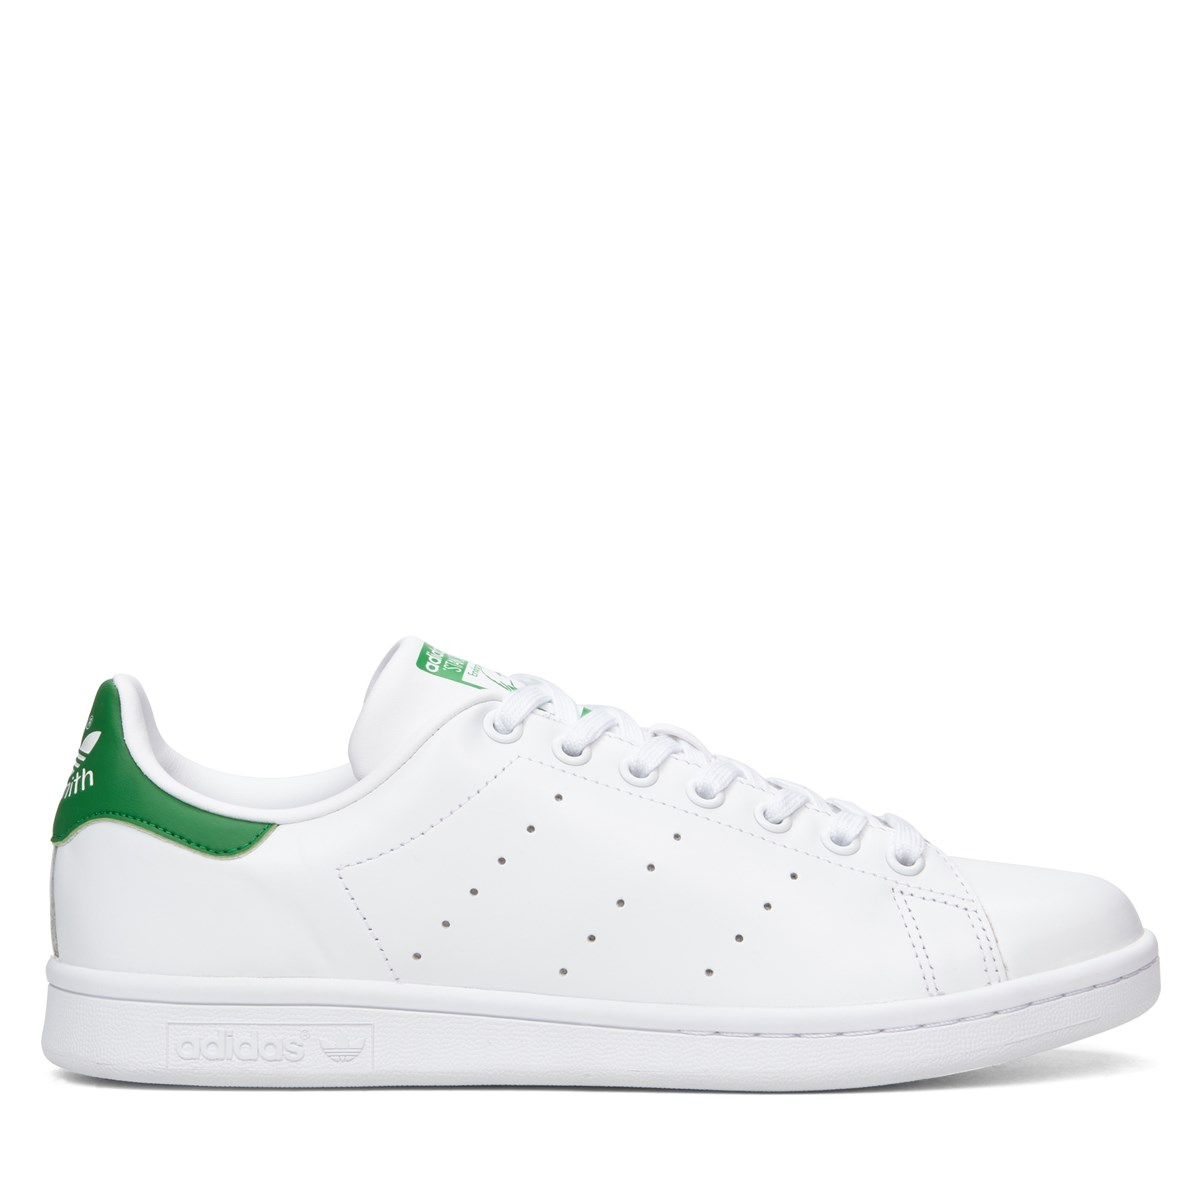 new styles 9f79c fc2a4 Men's Stan Smith Classic Sneakers in White